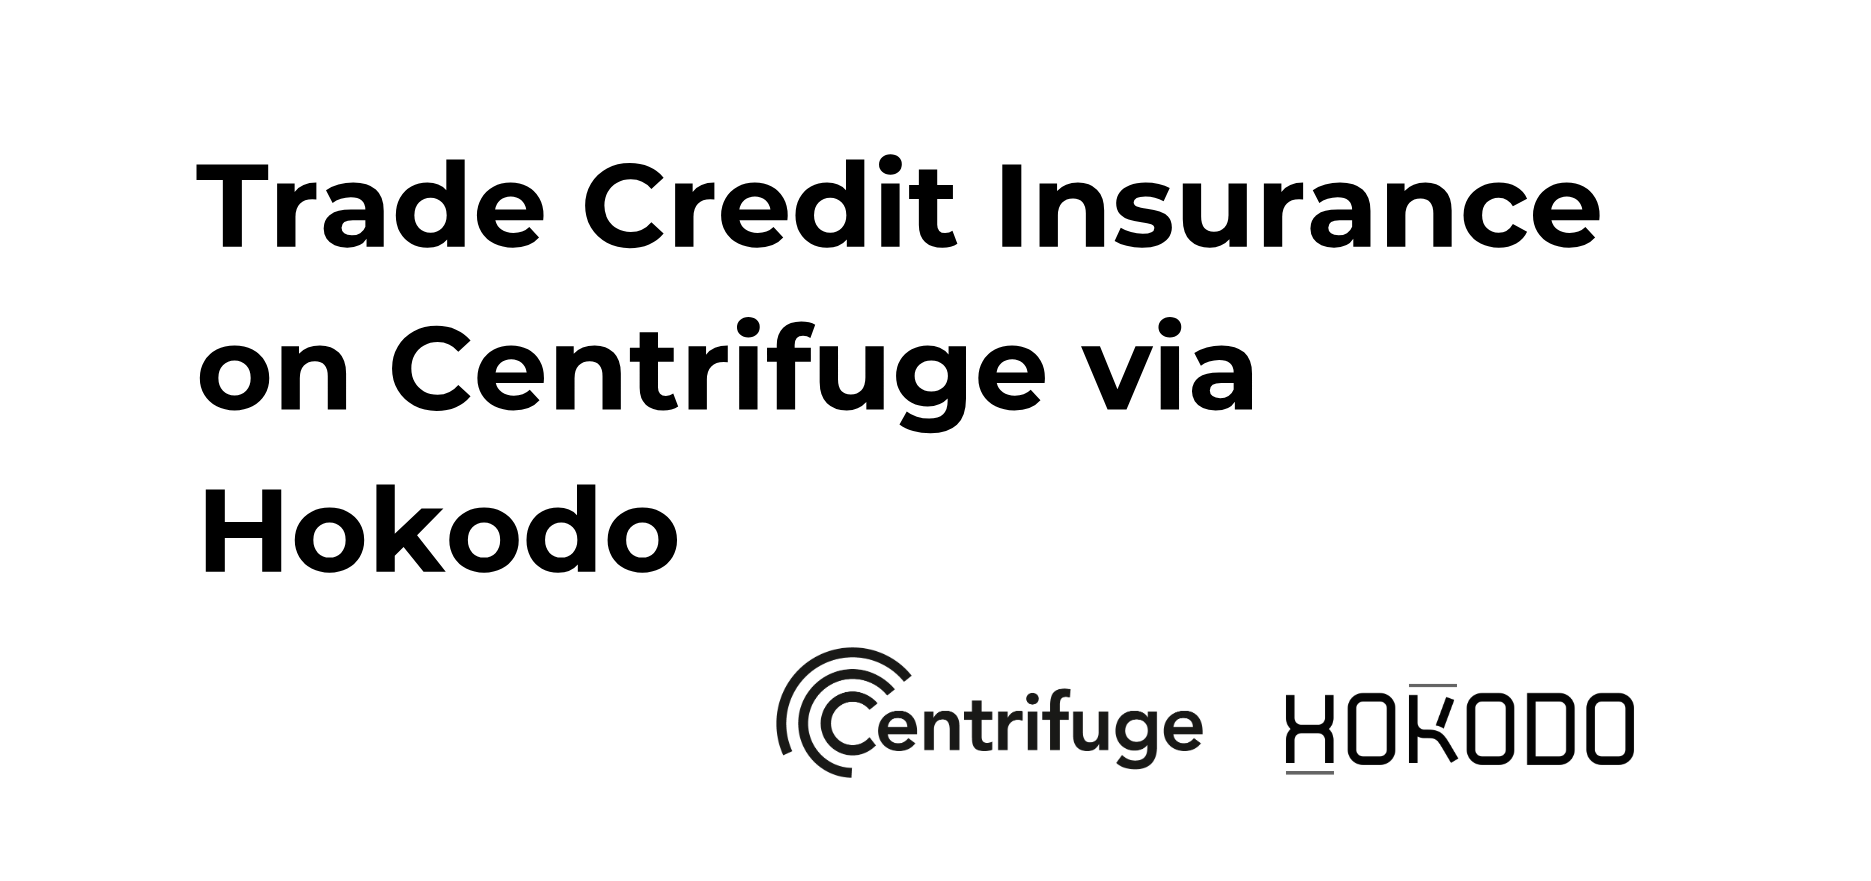 Reinventing Trade Finance with first blockchain-based credit insurance